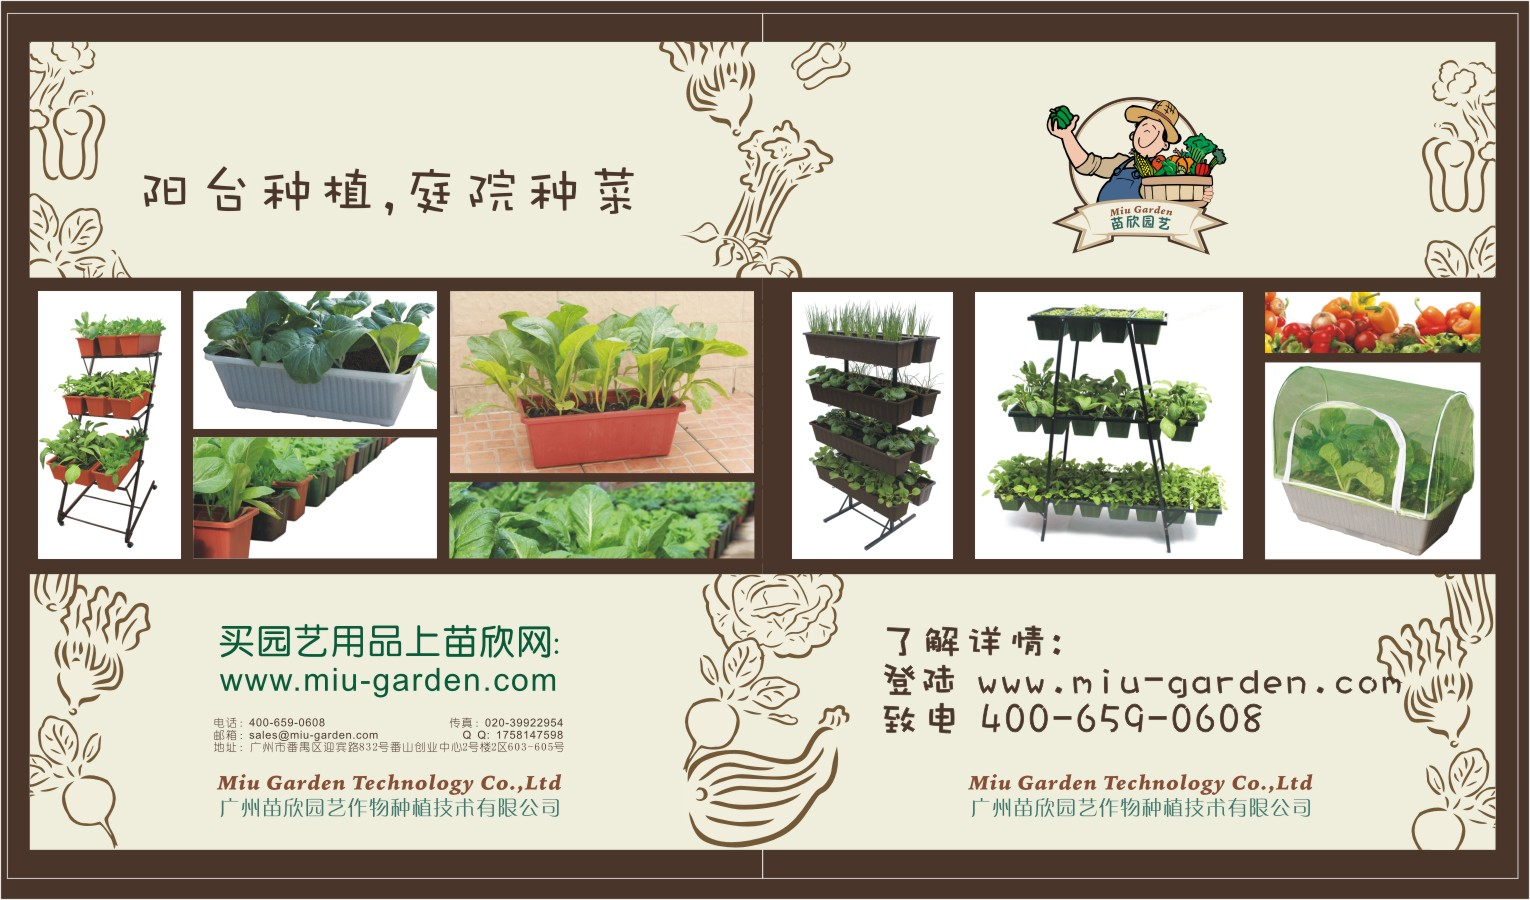 Miu Garden Technology Co., Ltd